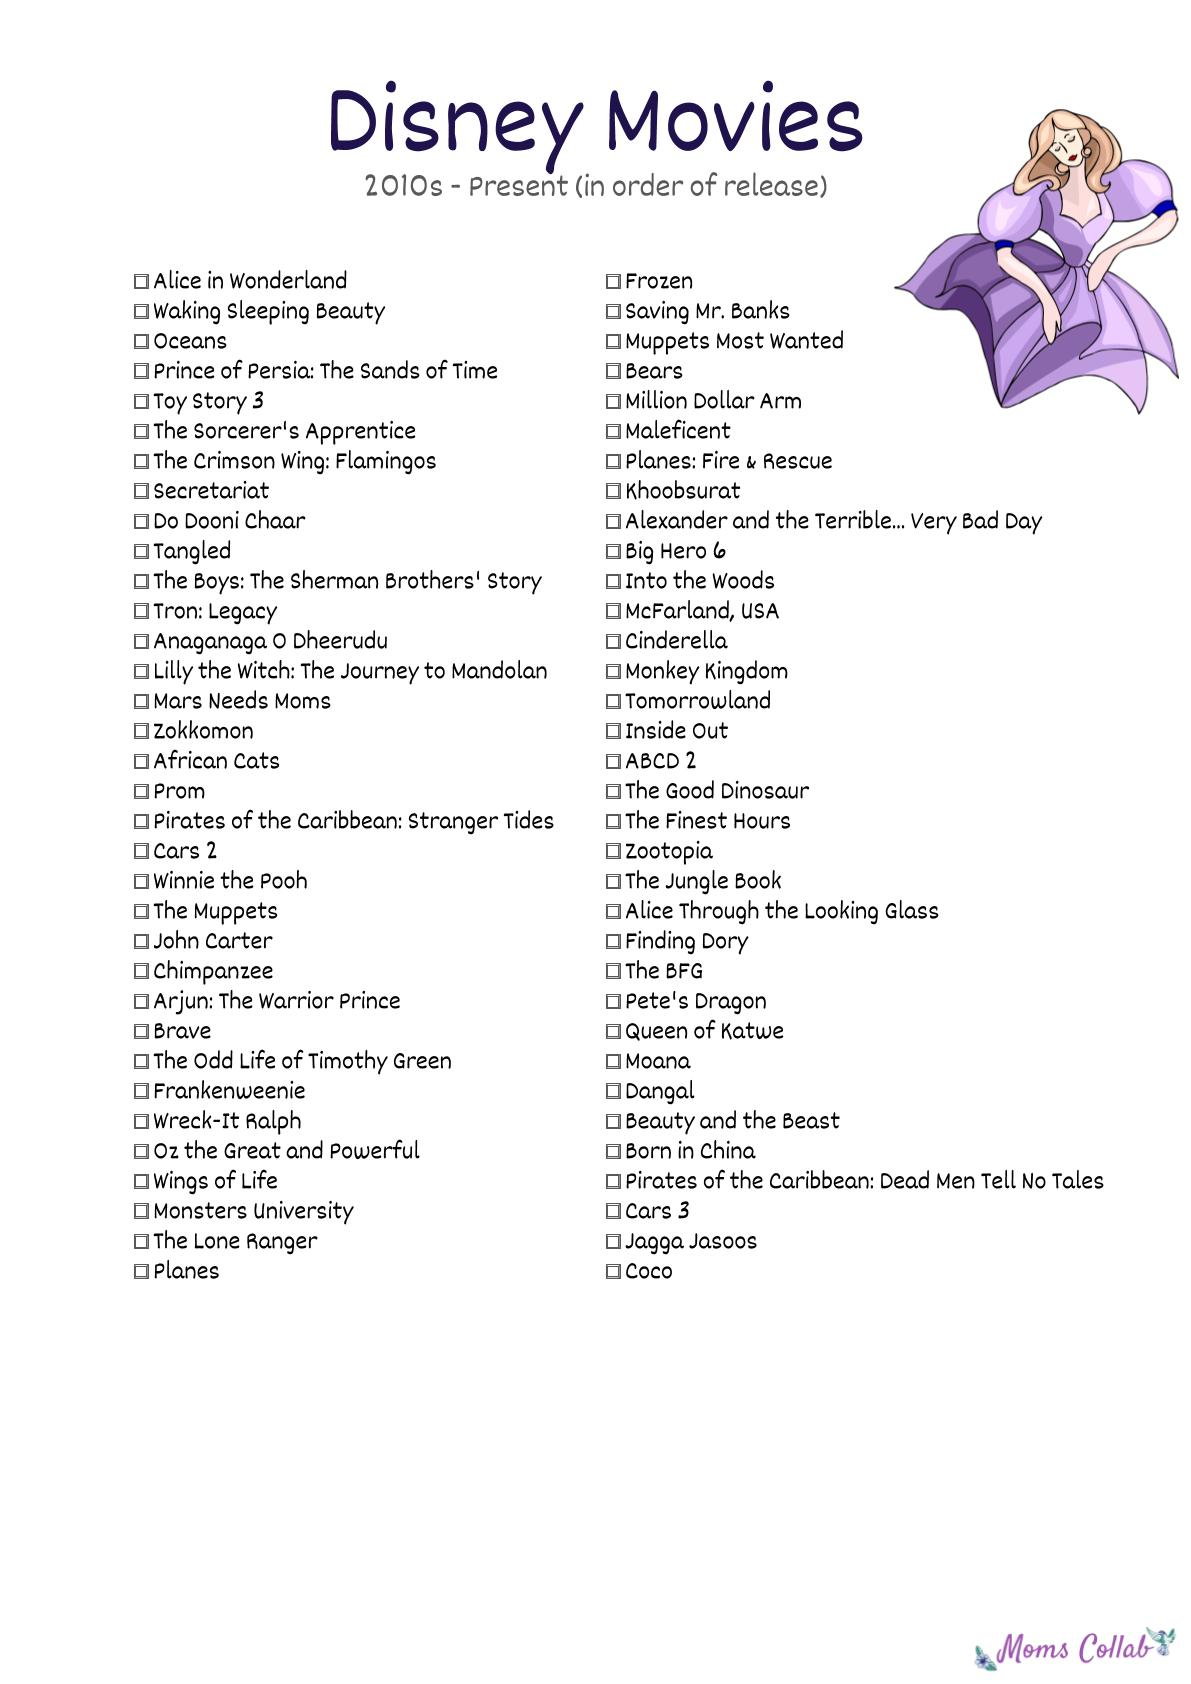 Disney movies list by year - Toy Story 3, Tangled, Brave, Wreck-It Ralph, Frozen, Maleficent, Big Hero 6, Inside Out, Zootopia, Finding Dory, Moana and Beauty and the Beast and many more Disney movies are found on this Disney movie list by year.